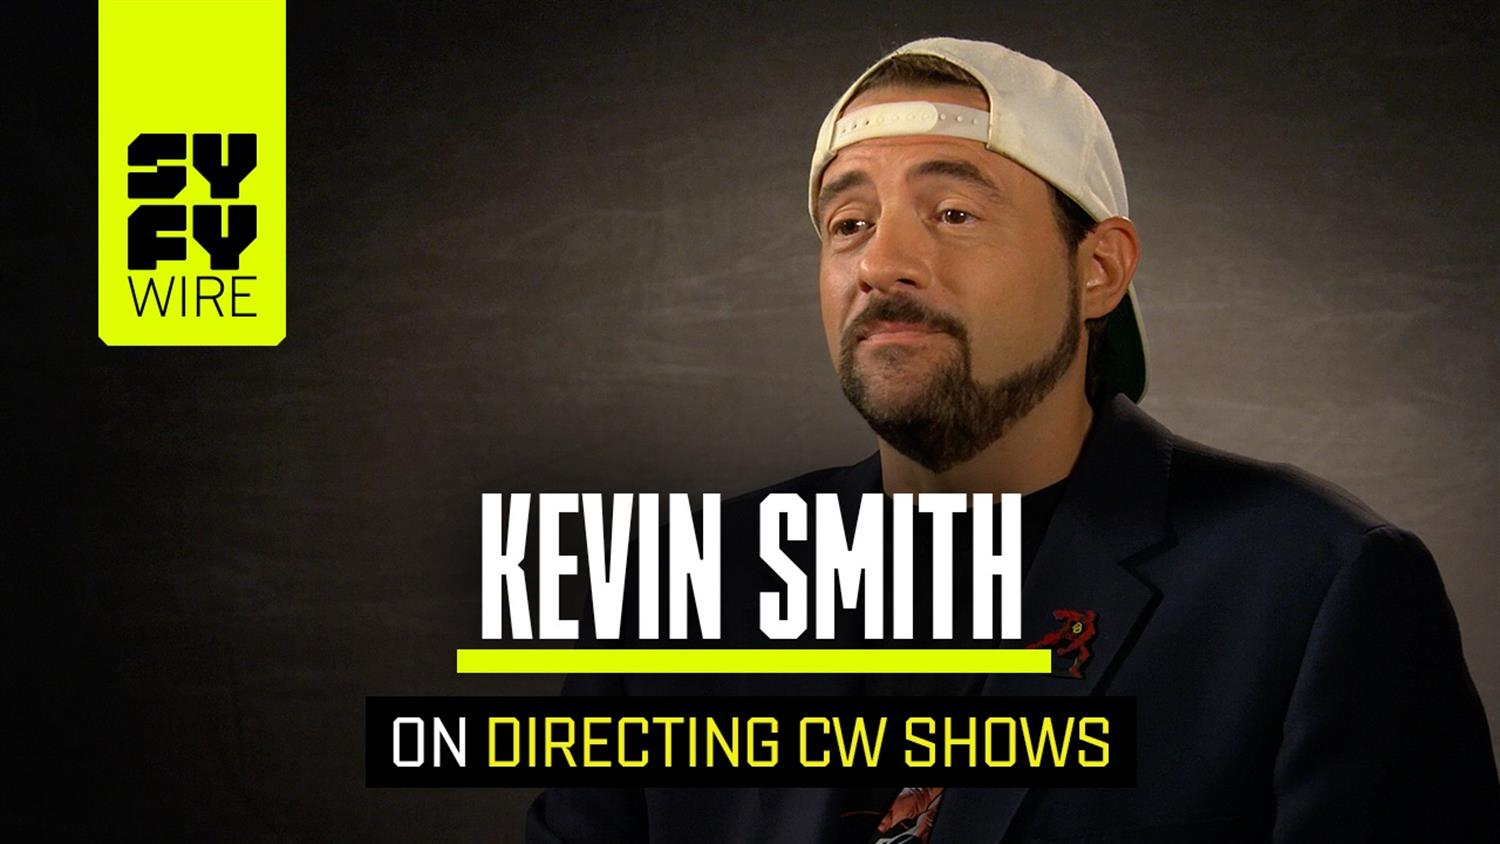 Kevin Smith On Why He Hasn't Directed Arrow